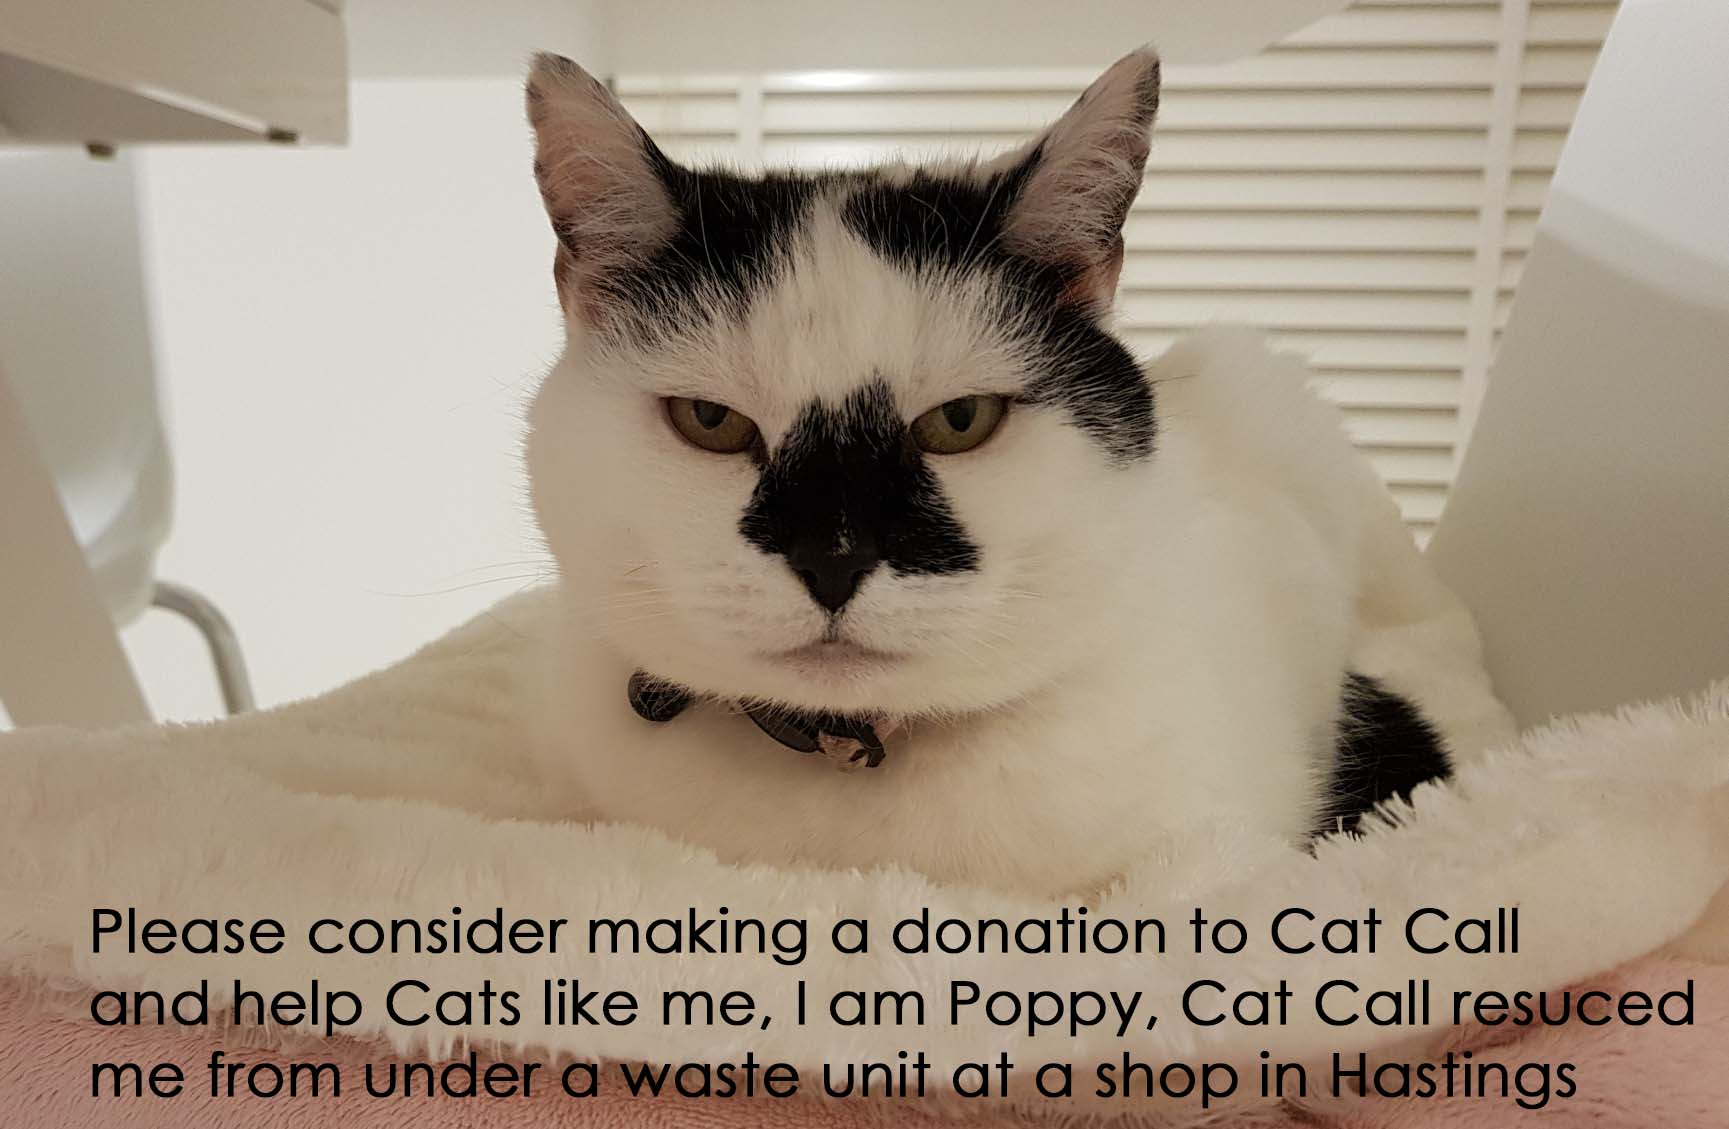 Please make a donation to Cat Call